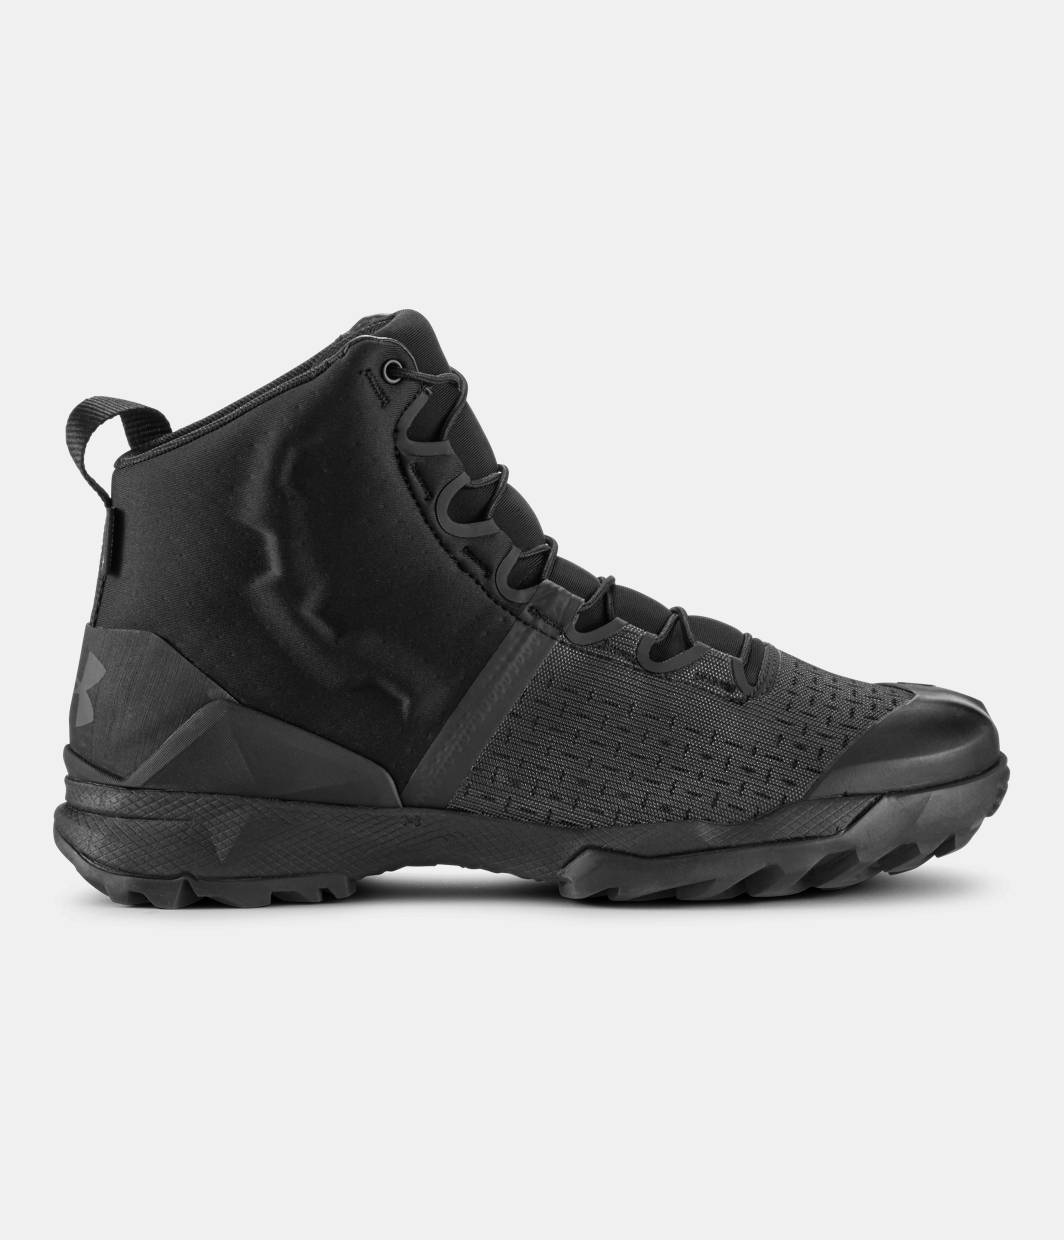 Cheap Price Outlet Sale Deals Under Armour UA Infil GTX Sale Big Discount Outlet Top Quality 2018 New Cheap Price F5EeWwY